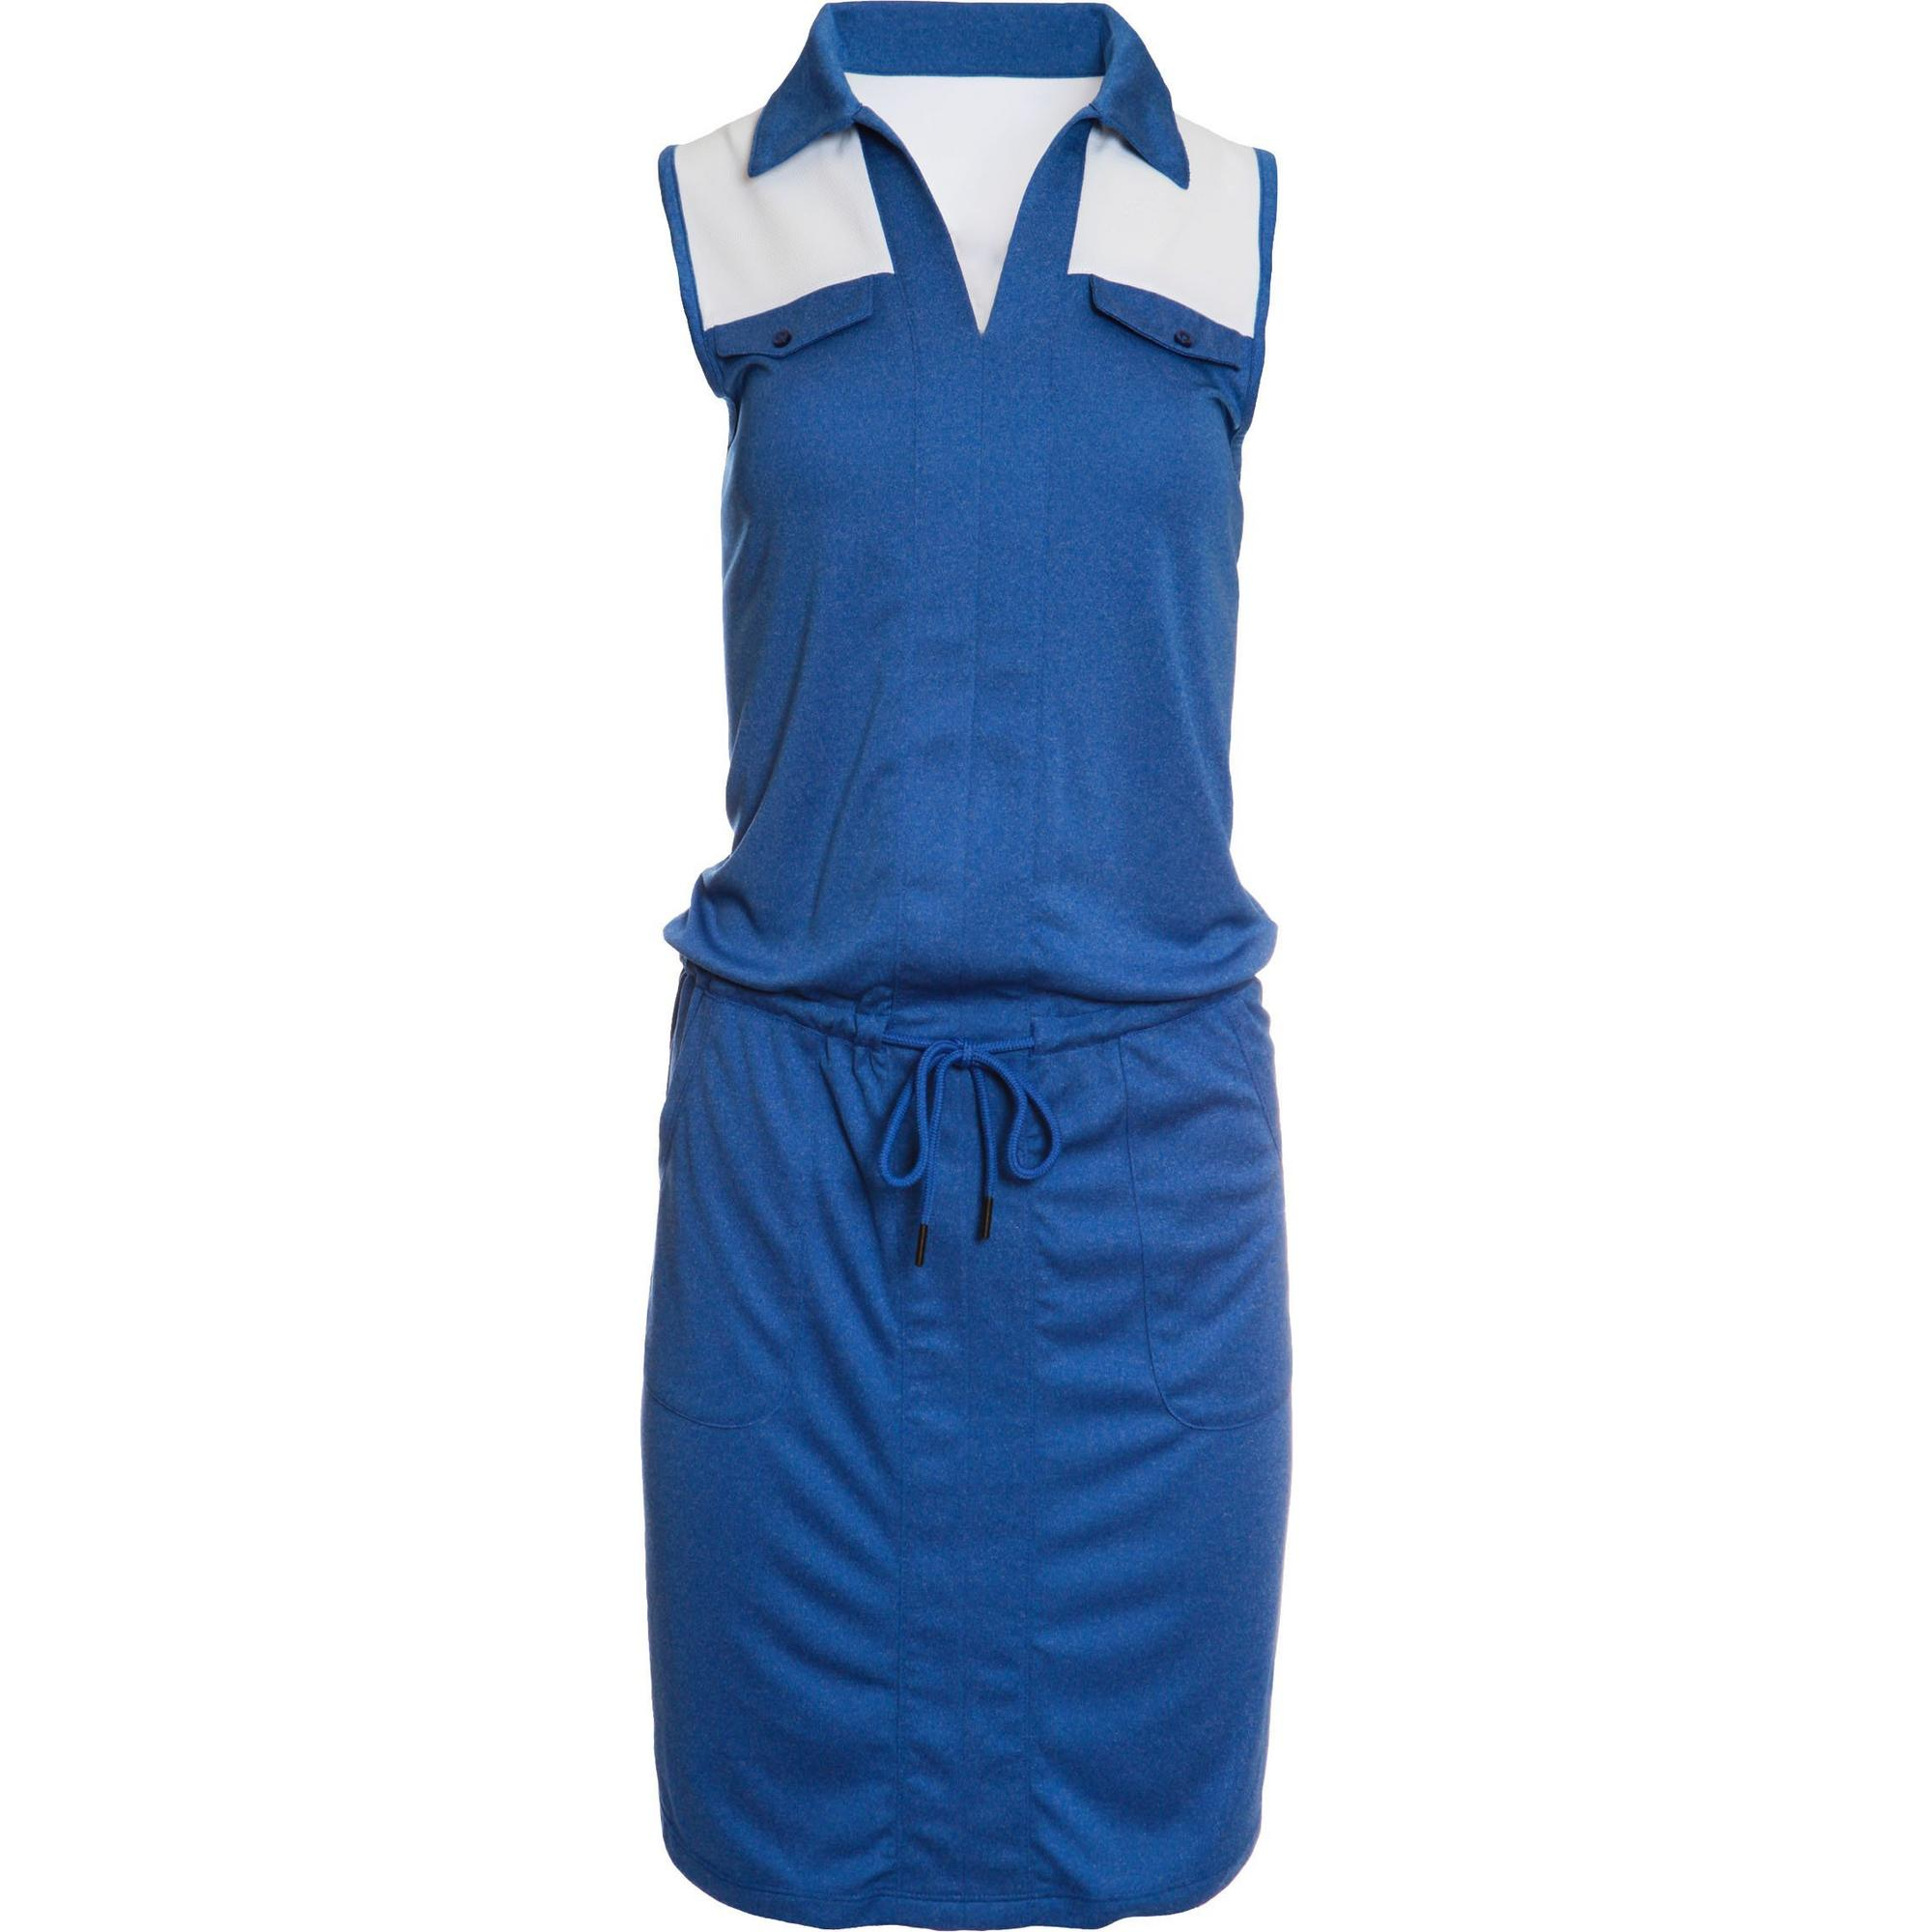 Women's Jewel Sleeveless Drawstring Dress